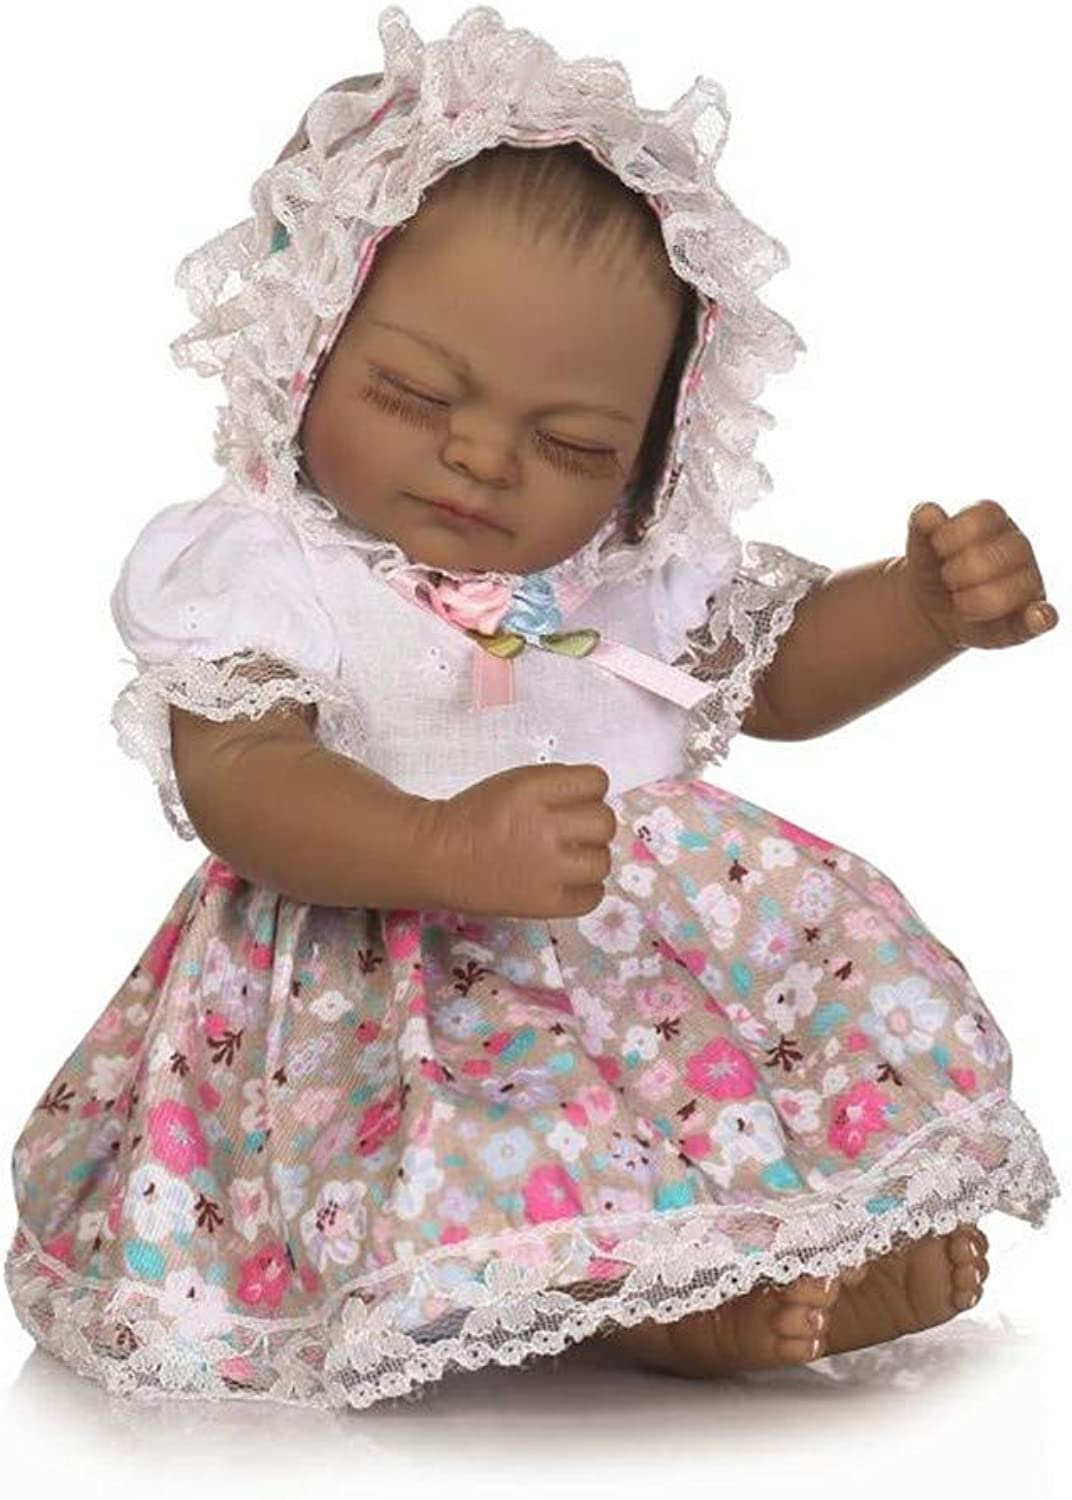 Reborn Baby Dolls, sweet small 12inch 25cm soft silicone vinyl real soft gentle touch black cute dolls for kids Birthday Gifts,girl